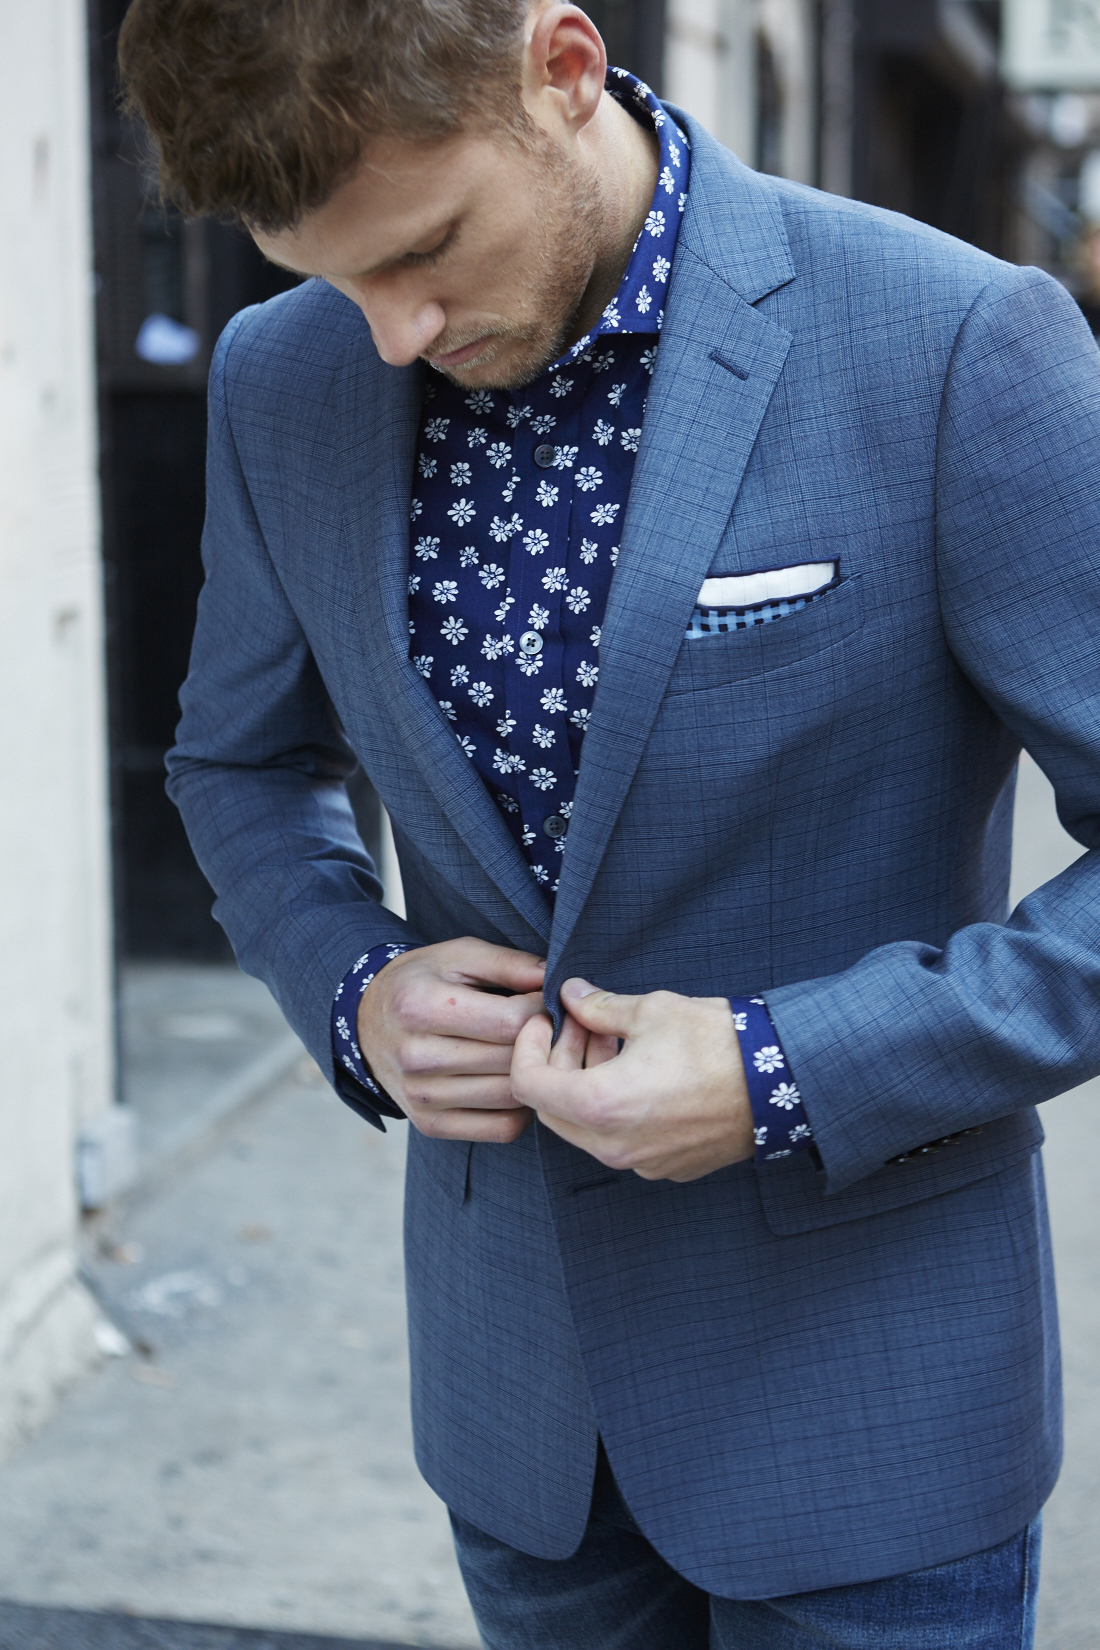 Men's Spring Suiting + Print Button Downs, blue suit with dark blue print shirt